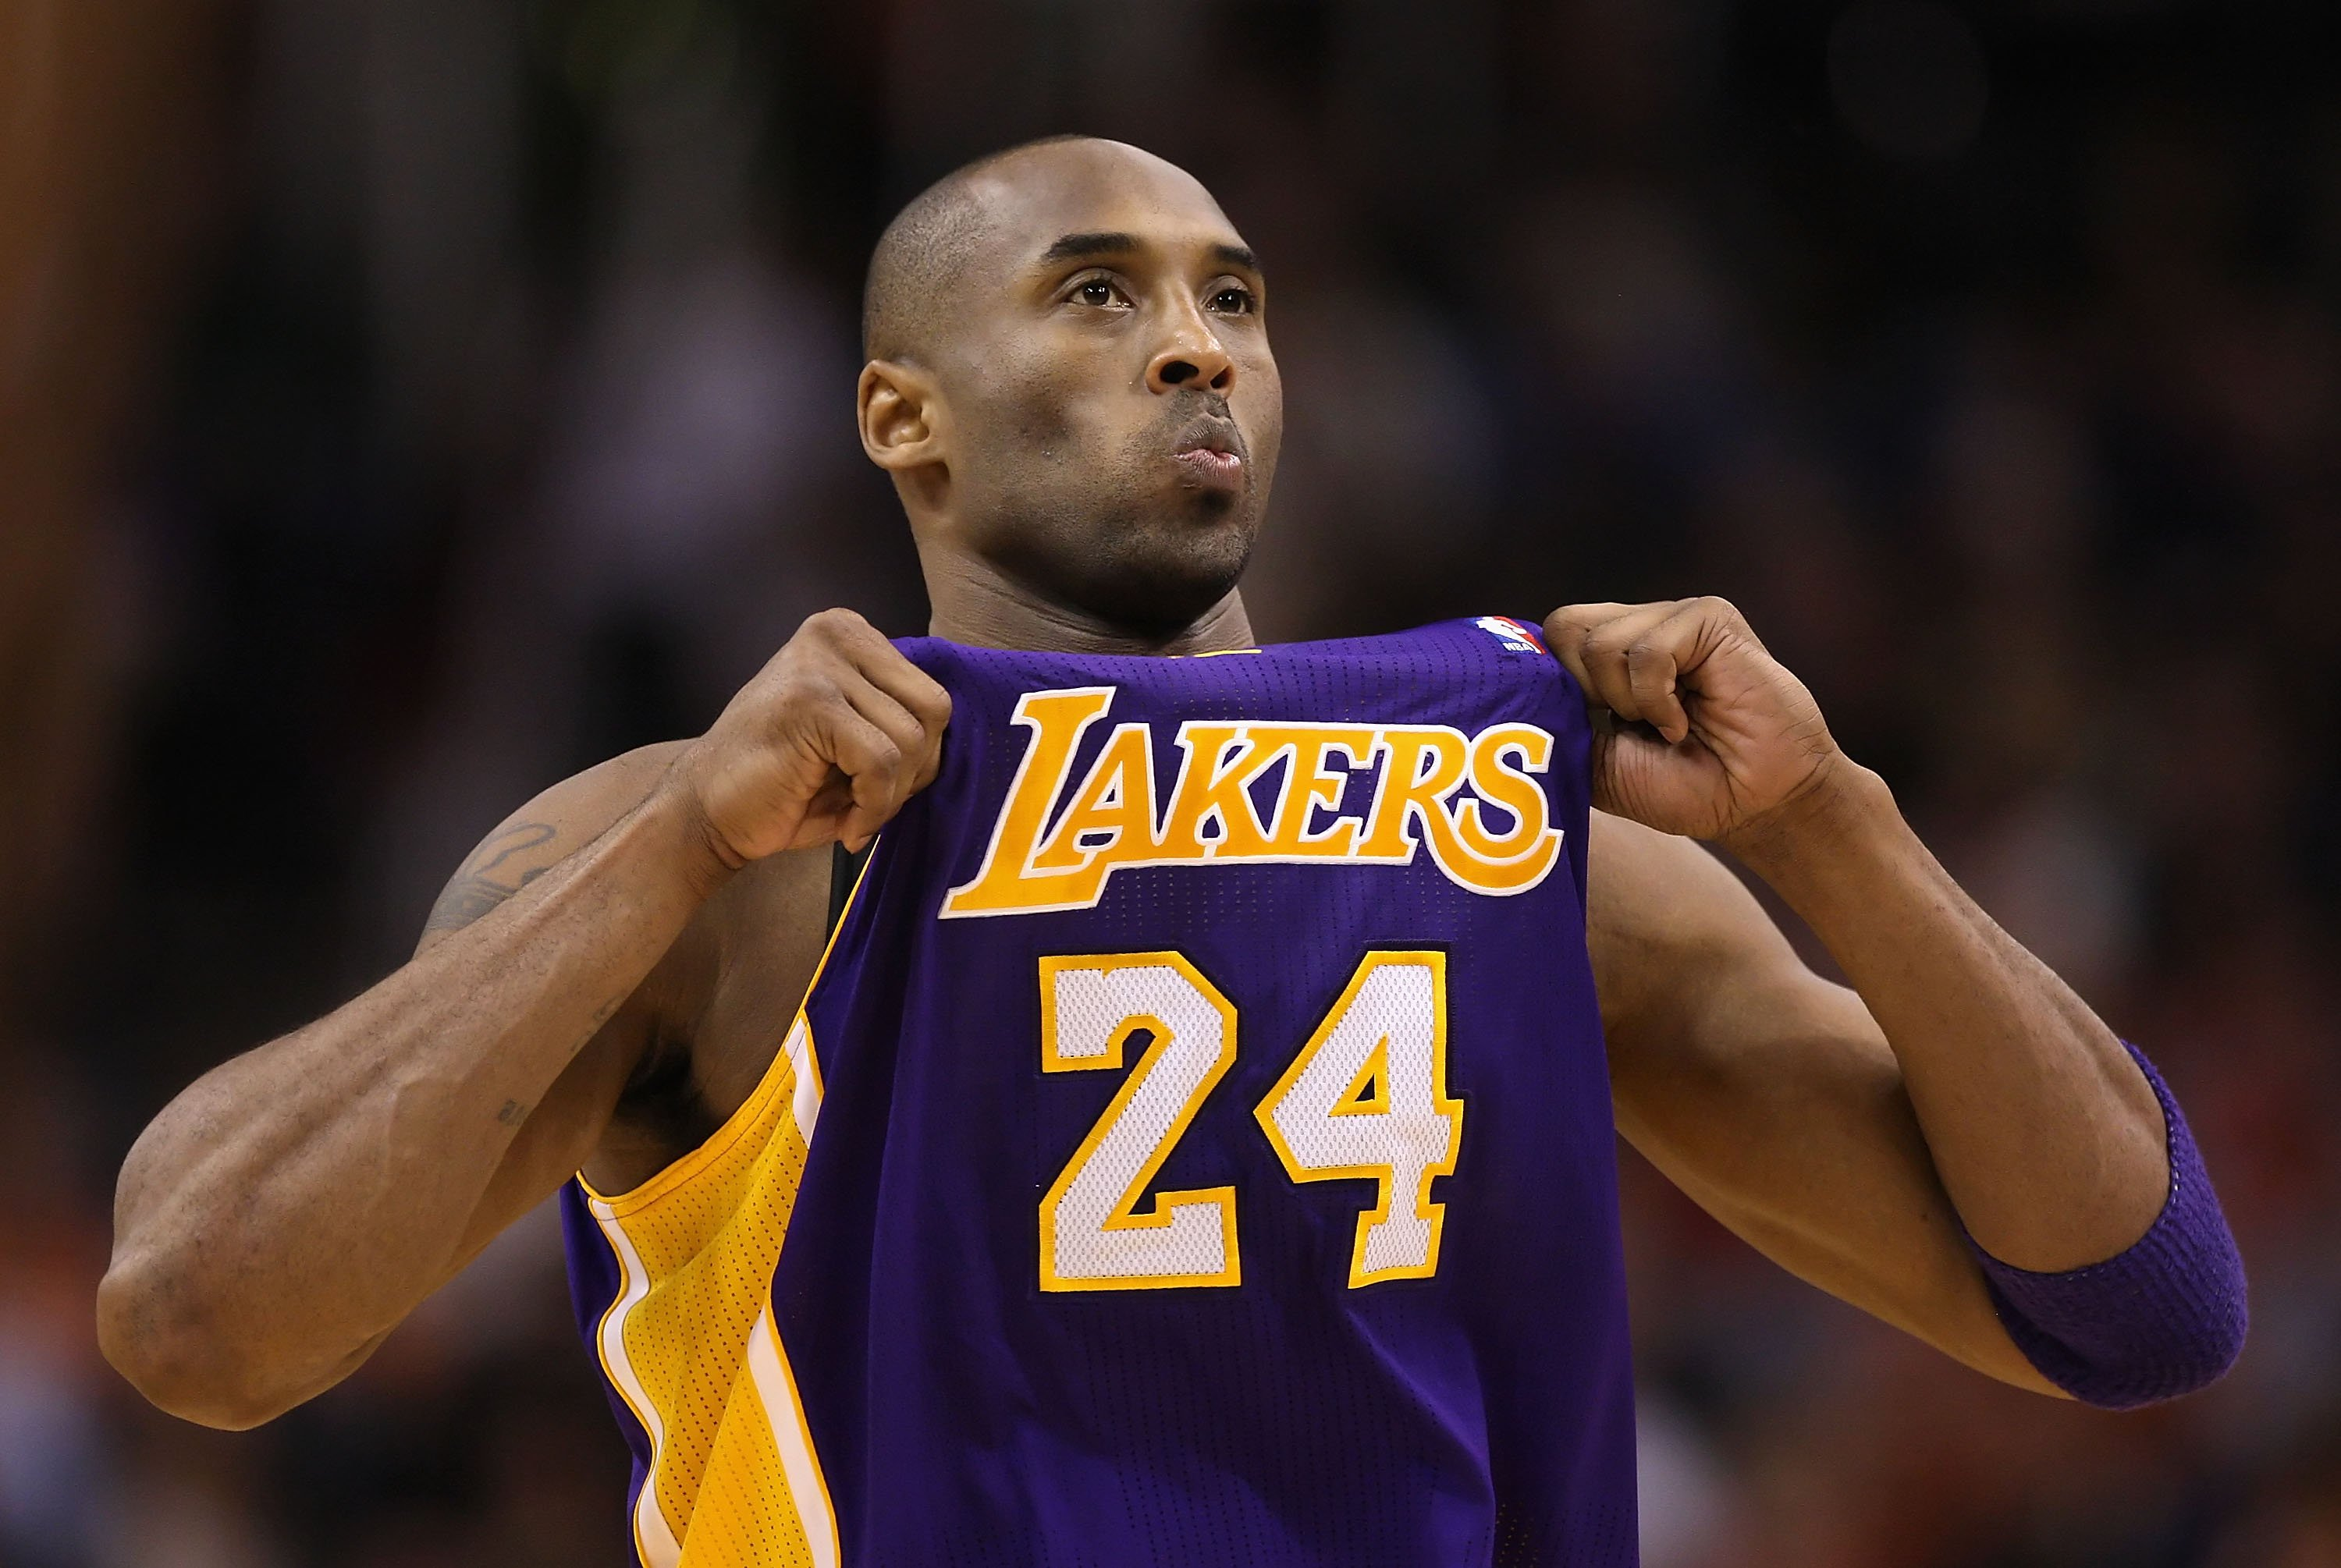 Kobe Bryant #24 of the Los Angeles Lakers adjusts his jersey during the NBA game against the Phoenix Suns at US Airways Center on February 19, 2012   Photo: GettyImages